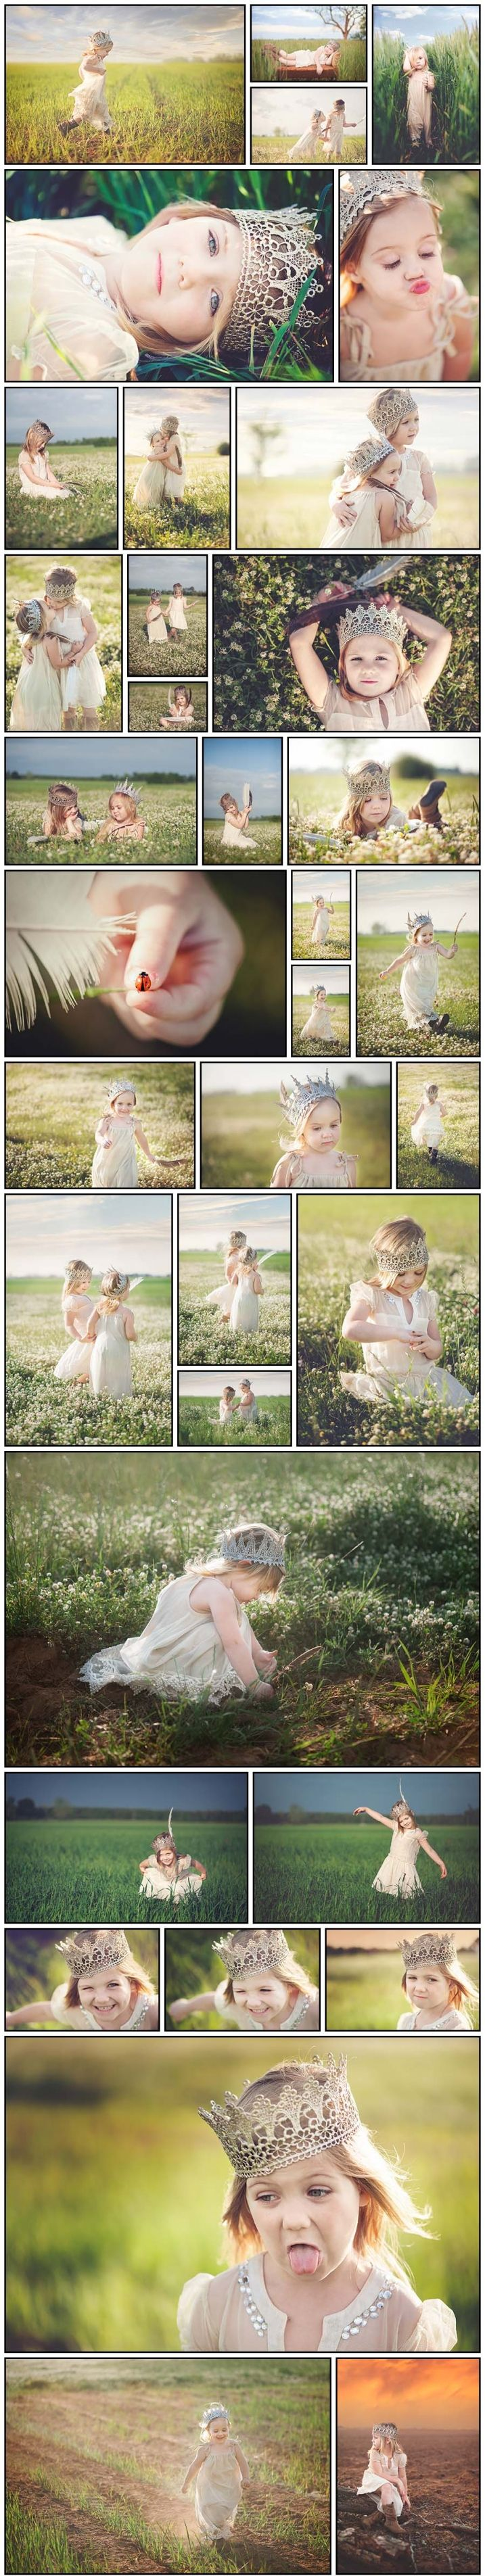 Princess photo shoot | child photography